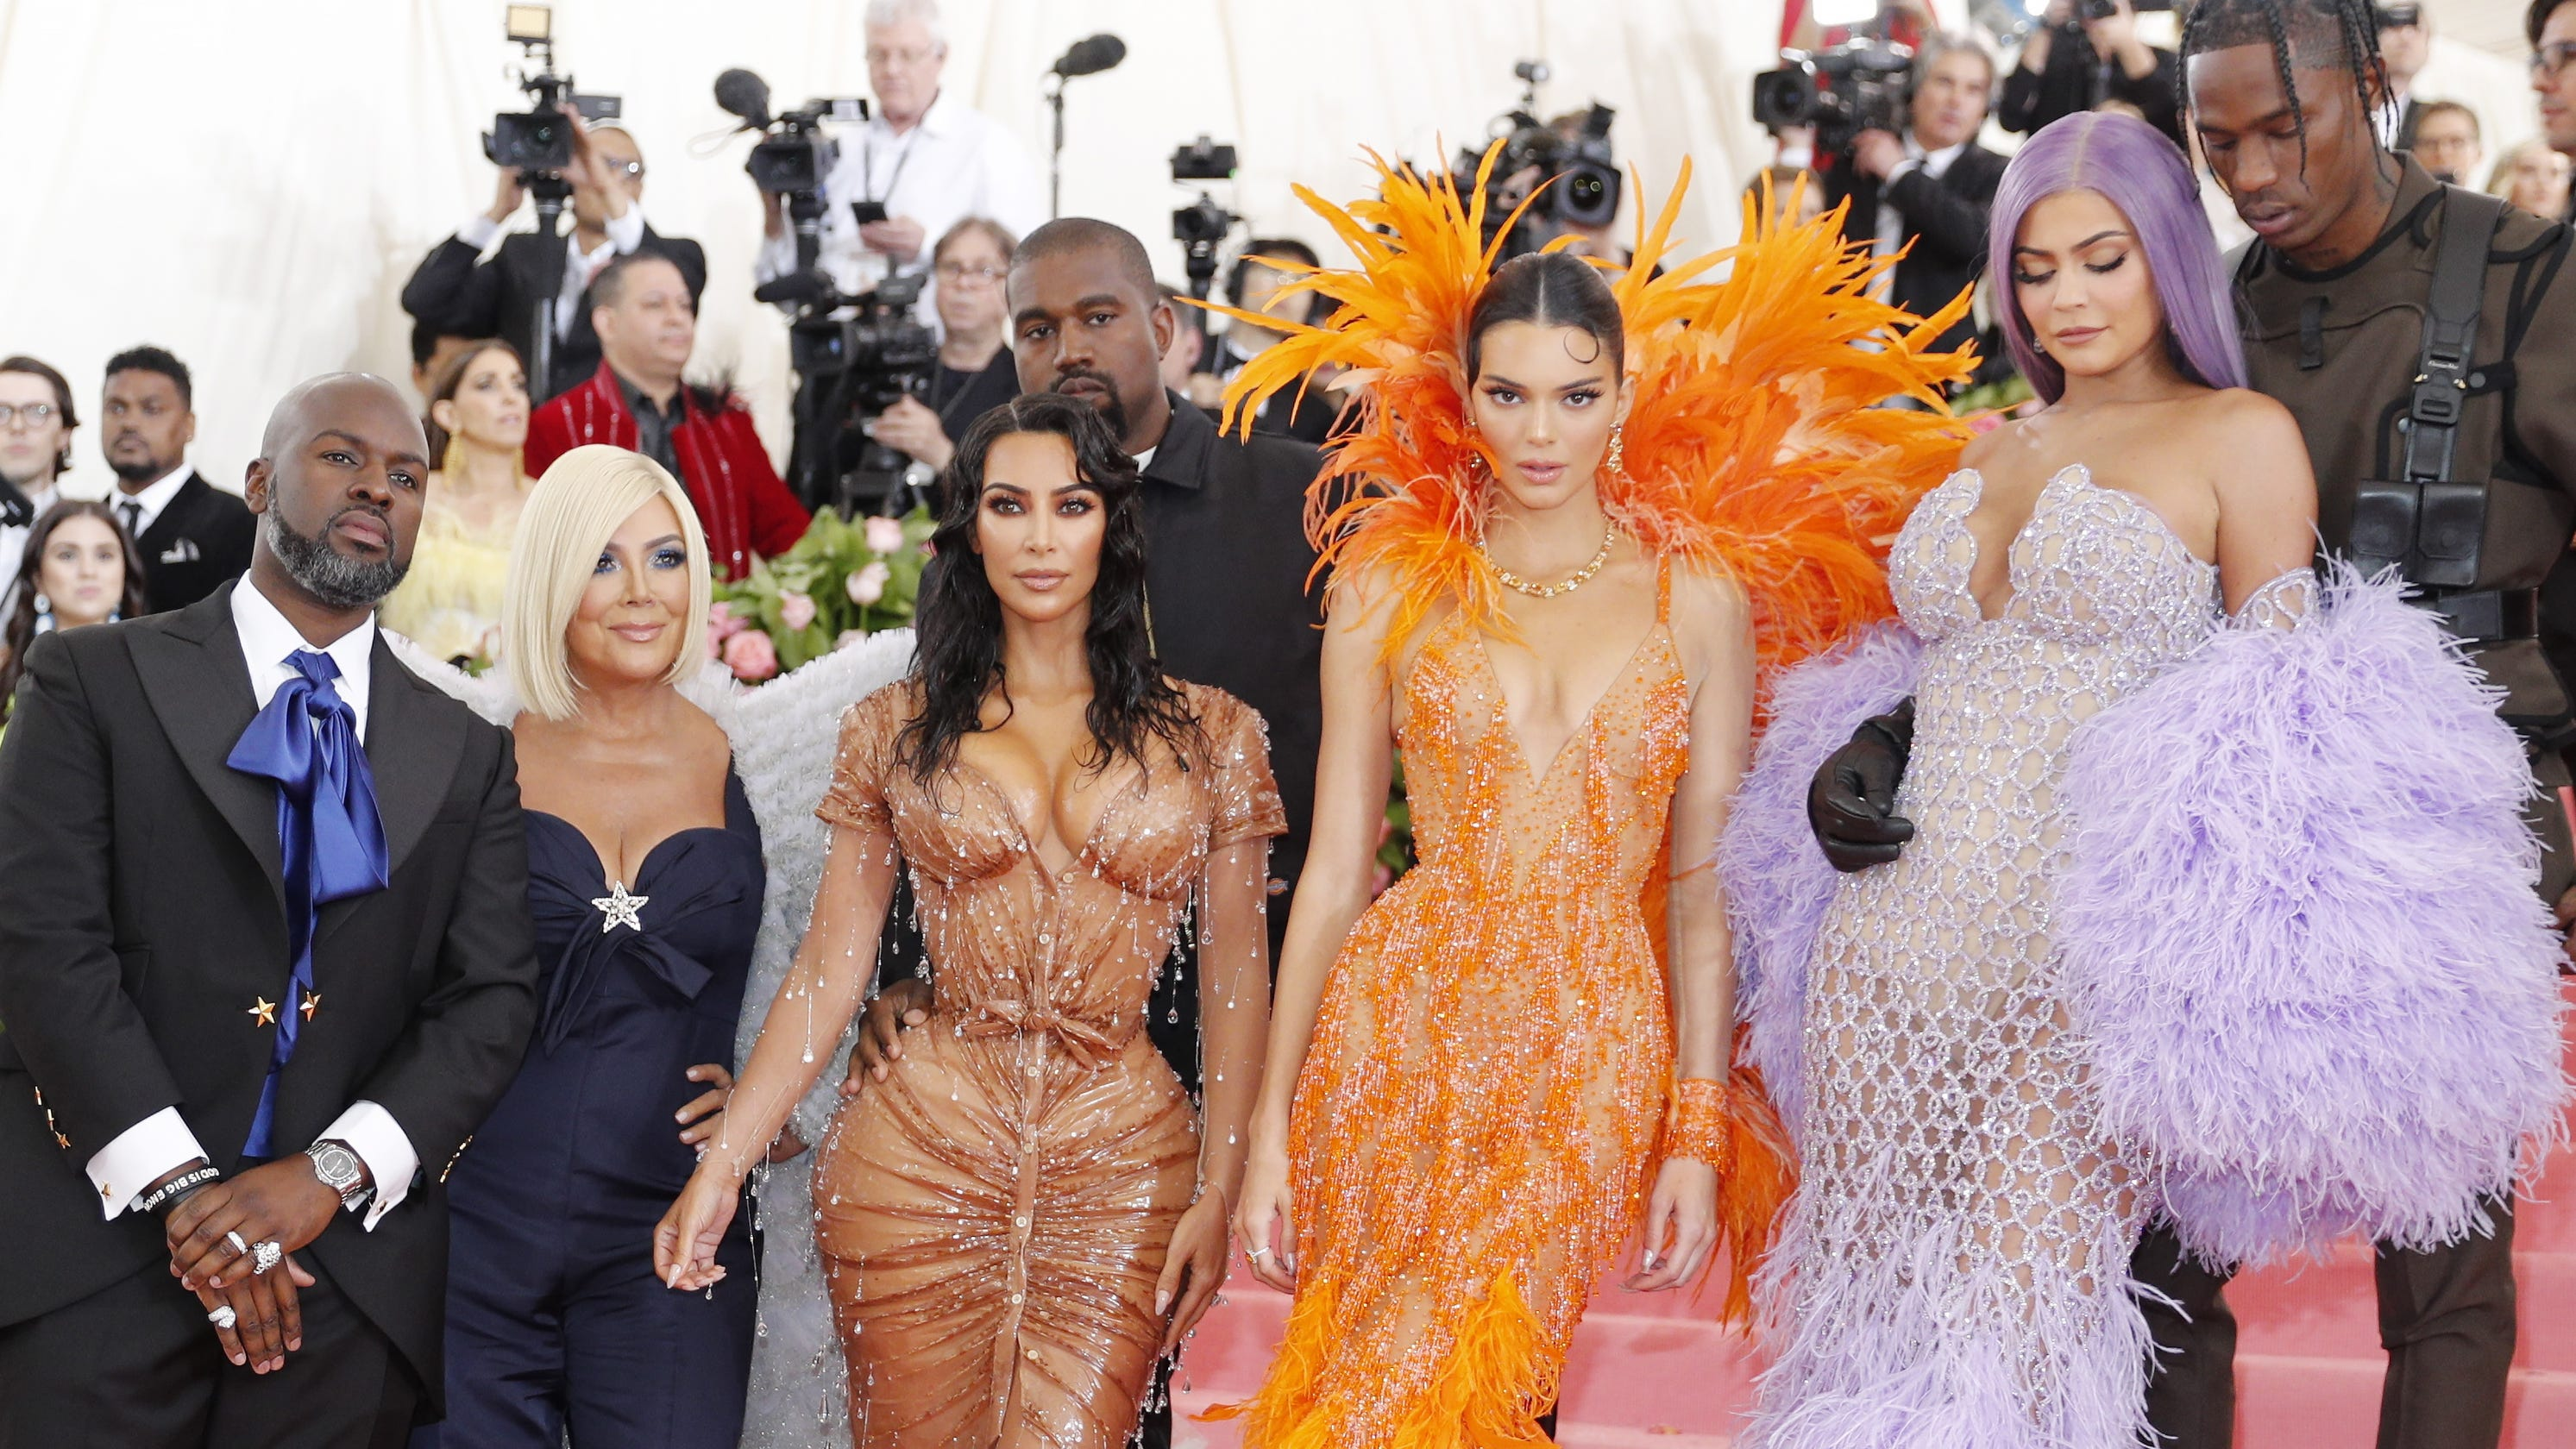 e50afd3baa4 Kris Jenner was in full momager mode as the Kardashians acted campy at the  Met Gala